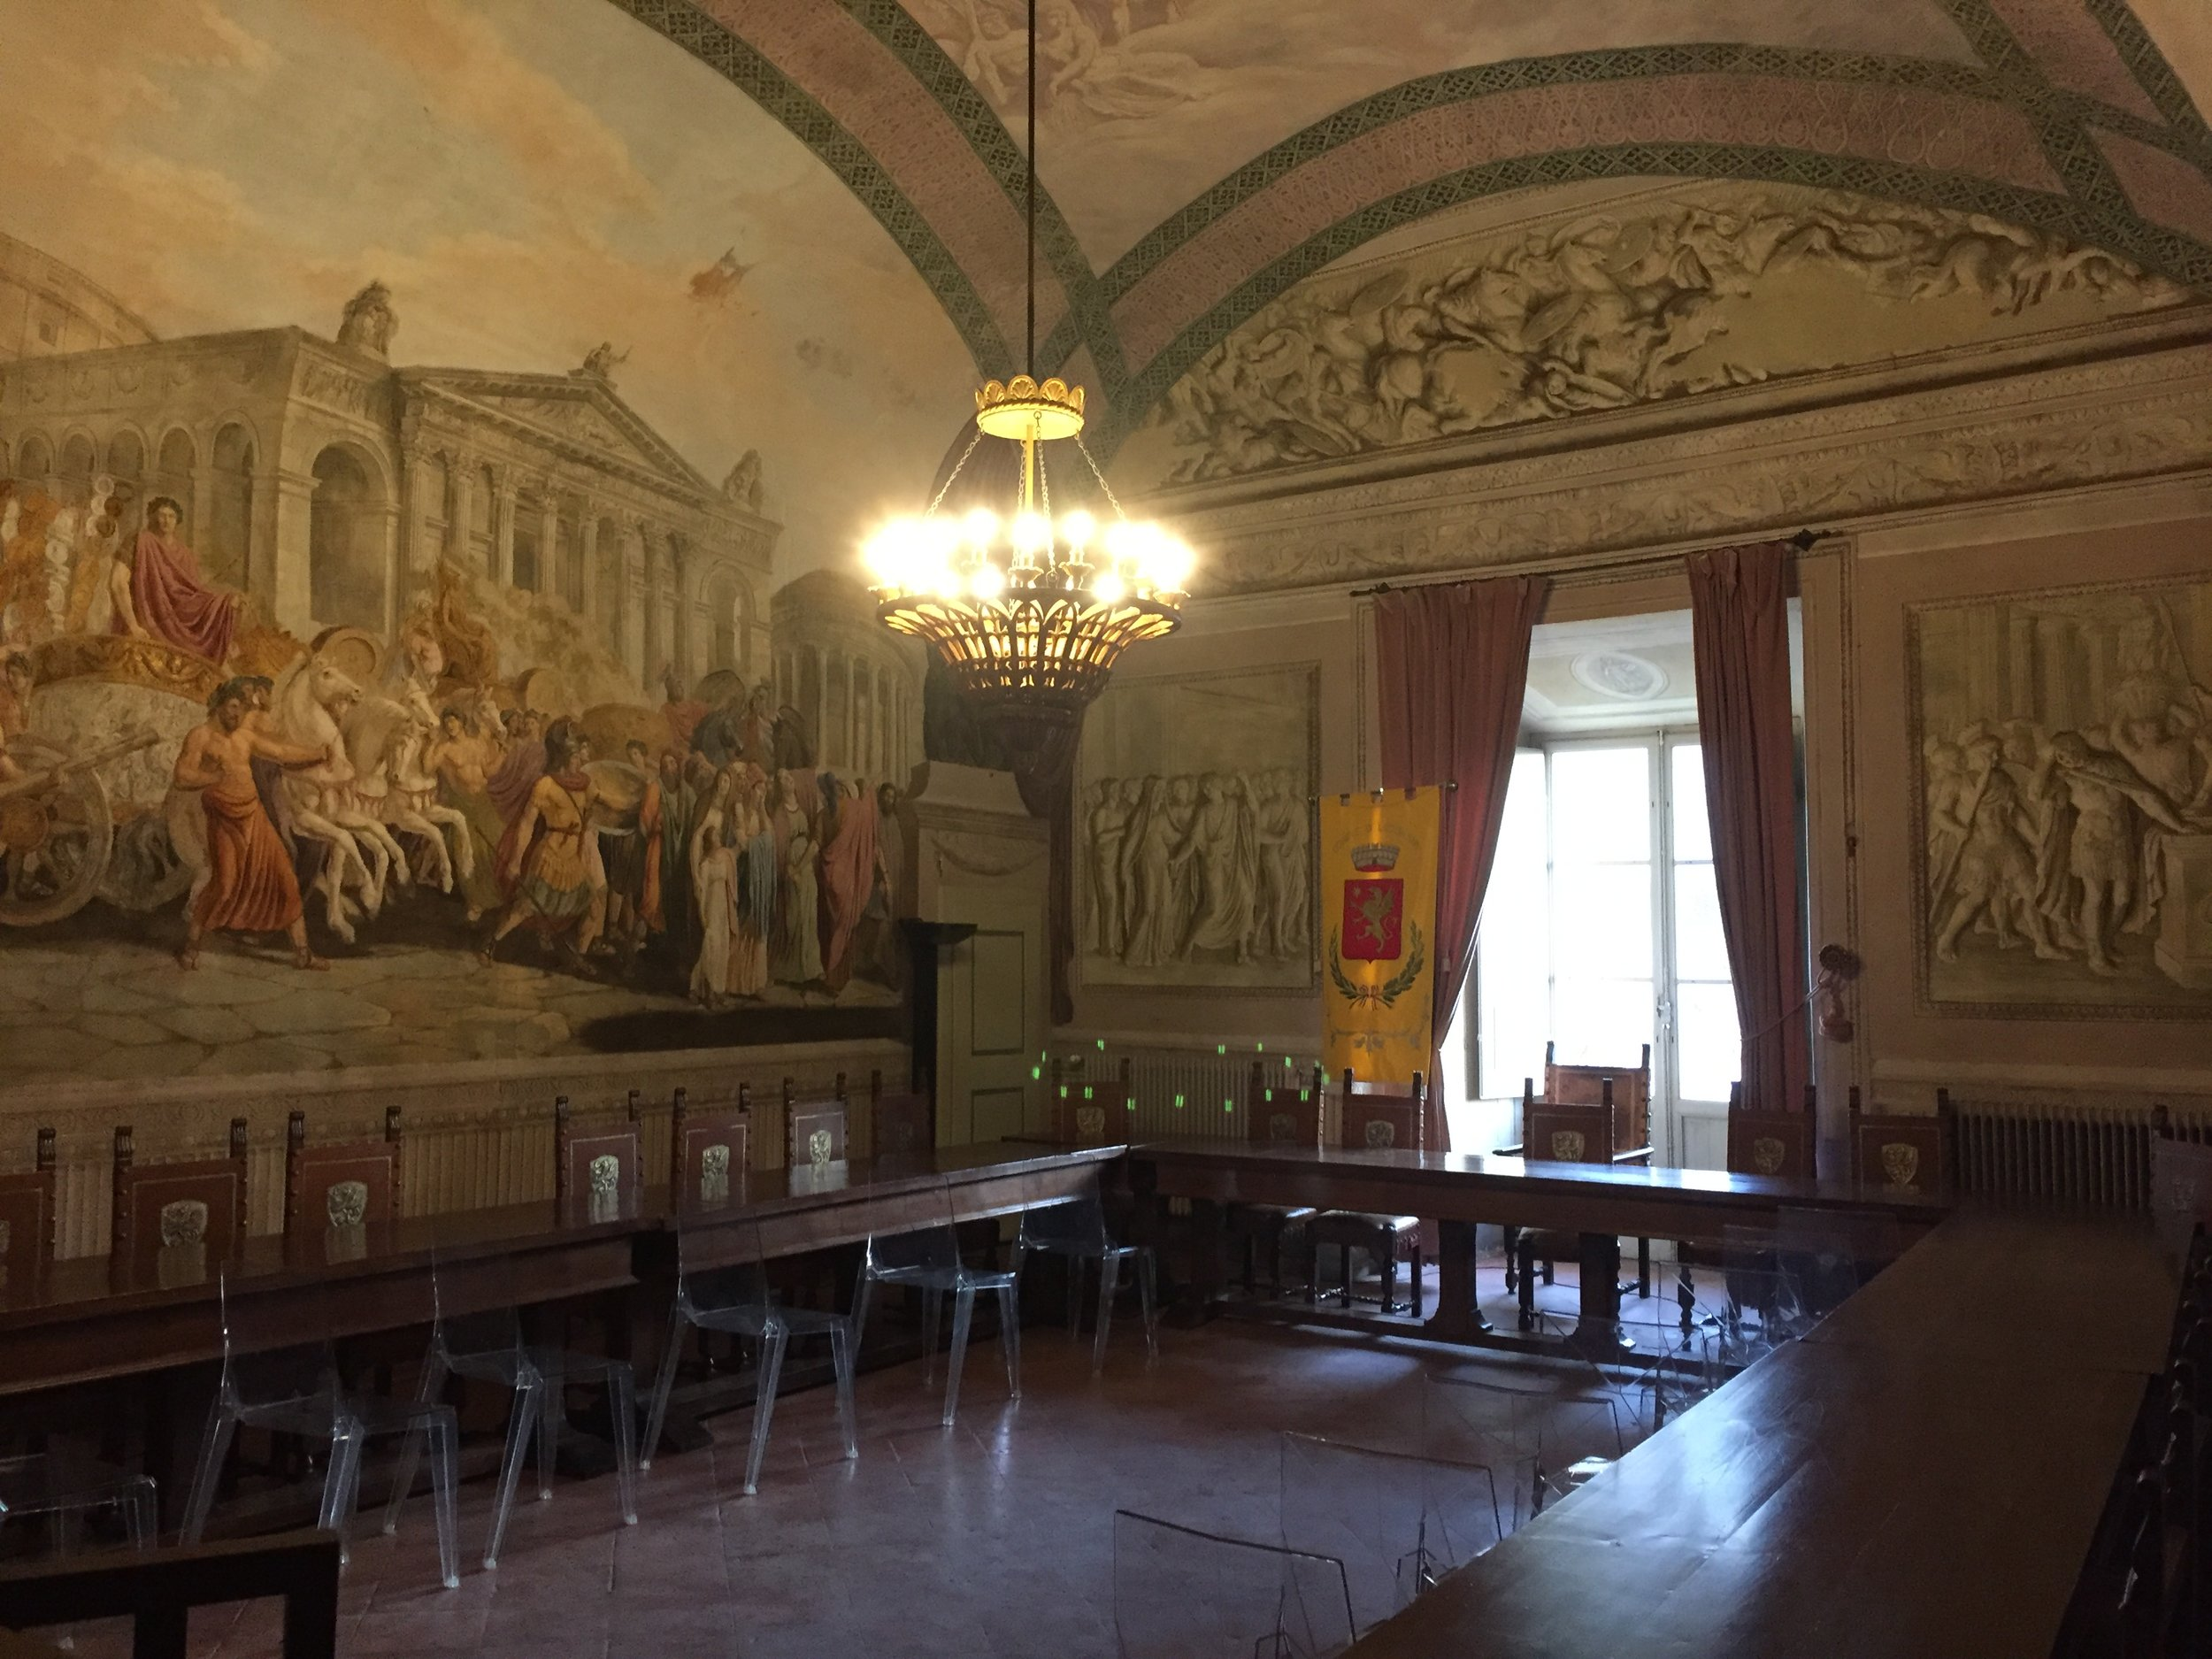 Frescoes in the Lucignano town council chamber.JPG